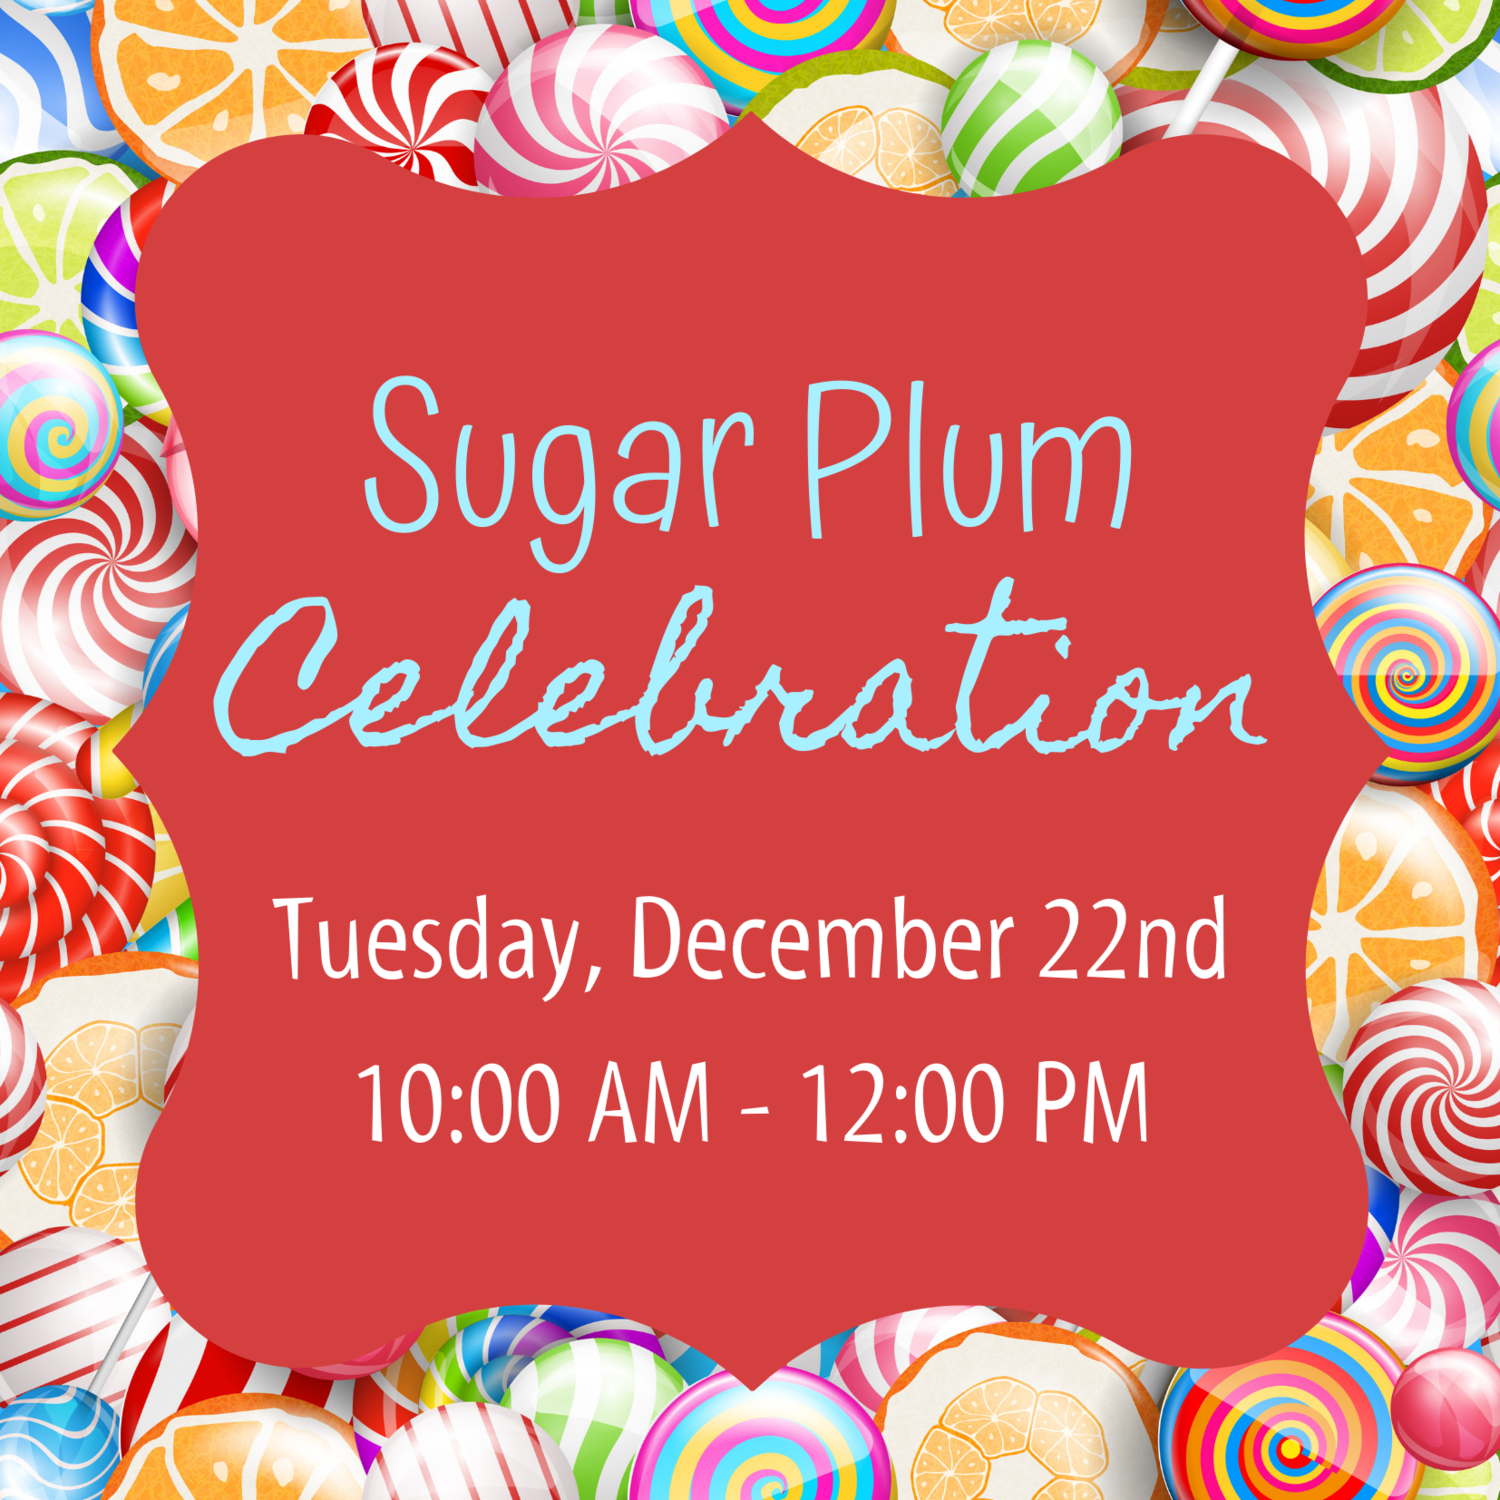 Sugar Plum Celebration - Tuesday, December 22nd